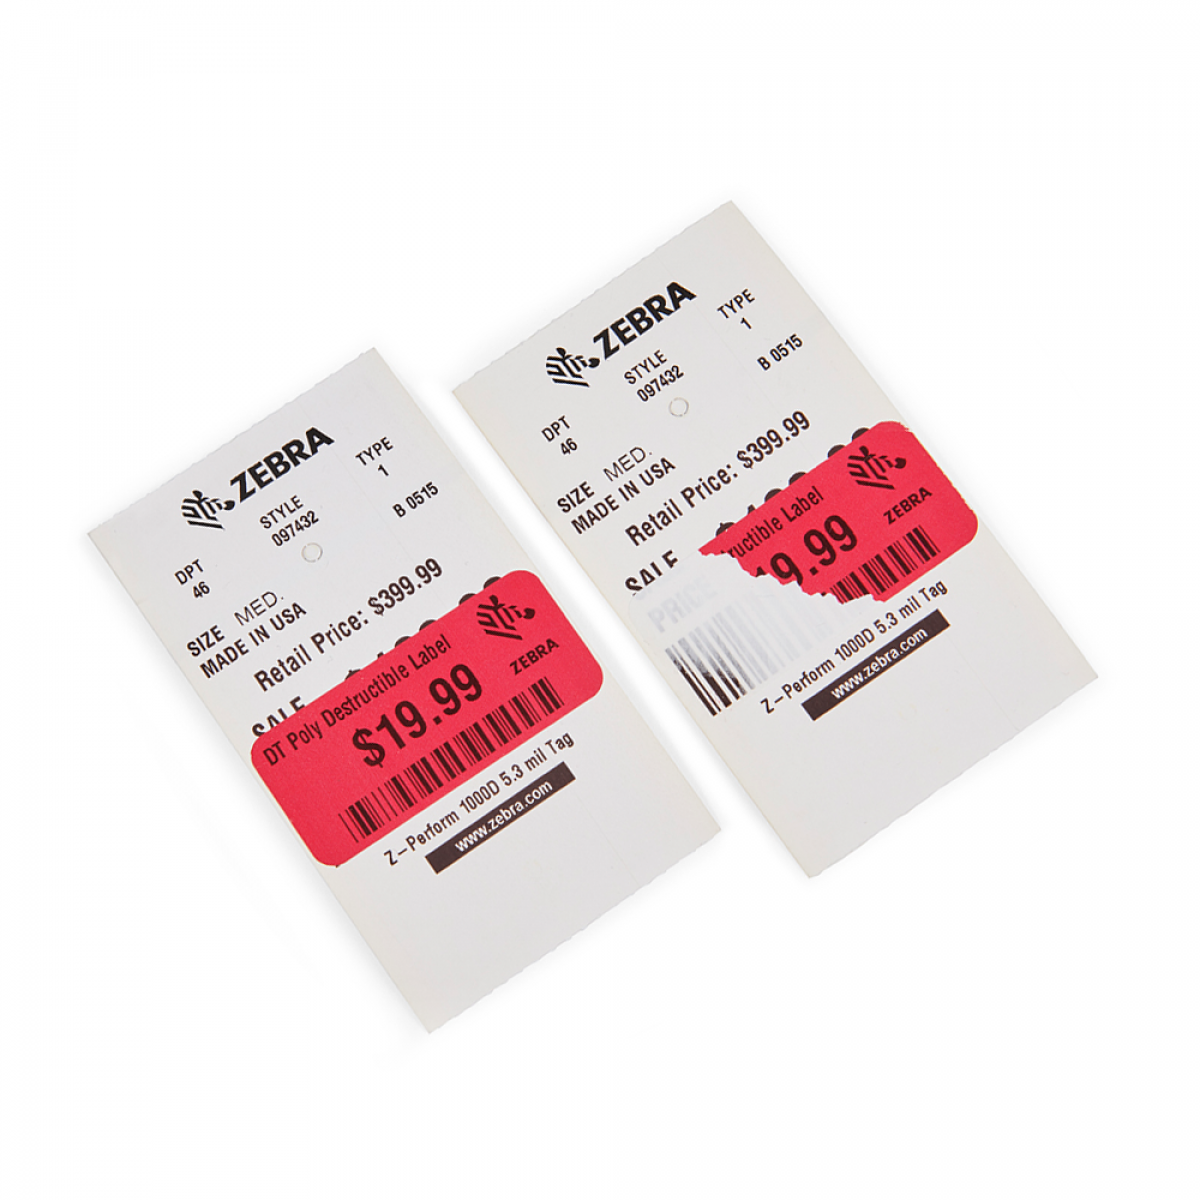 Printing supplies for tags and destructible labels